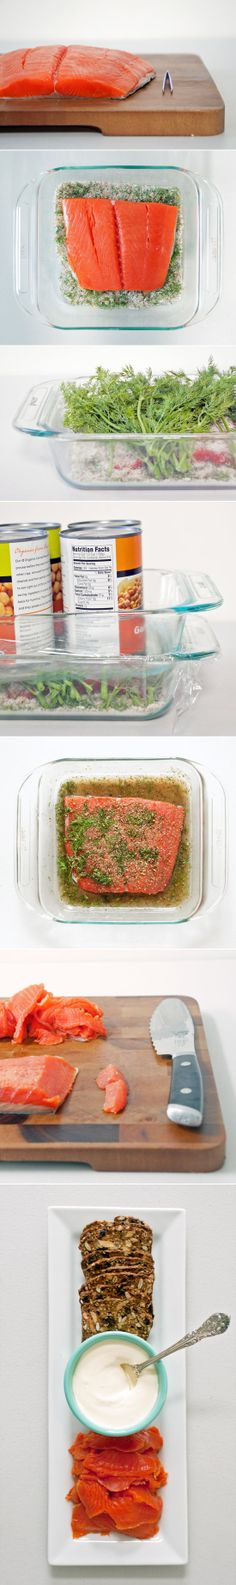 How to Make Gravlax, Step by Step (or cured salmon for those who wonder what it is)